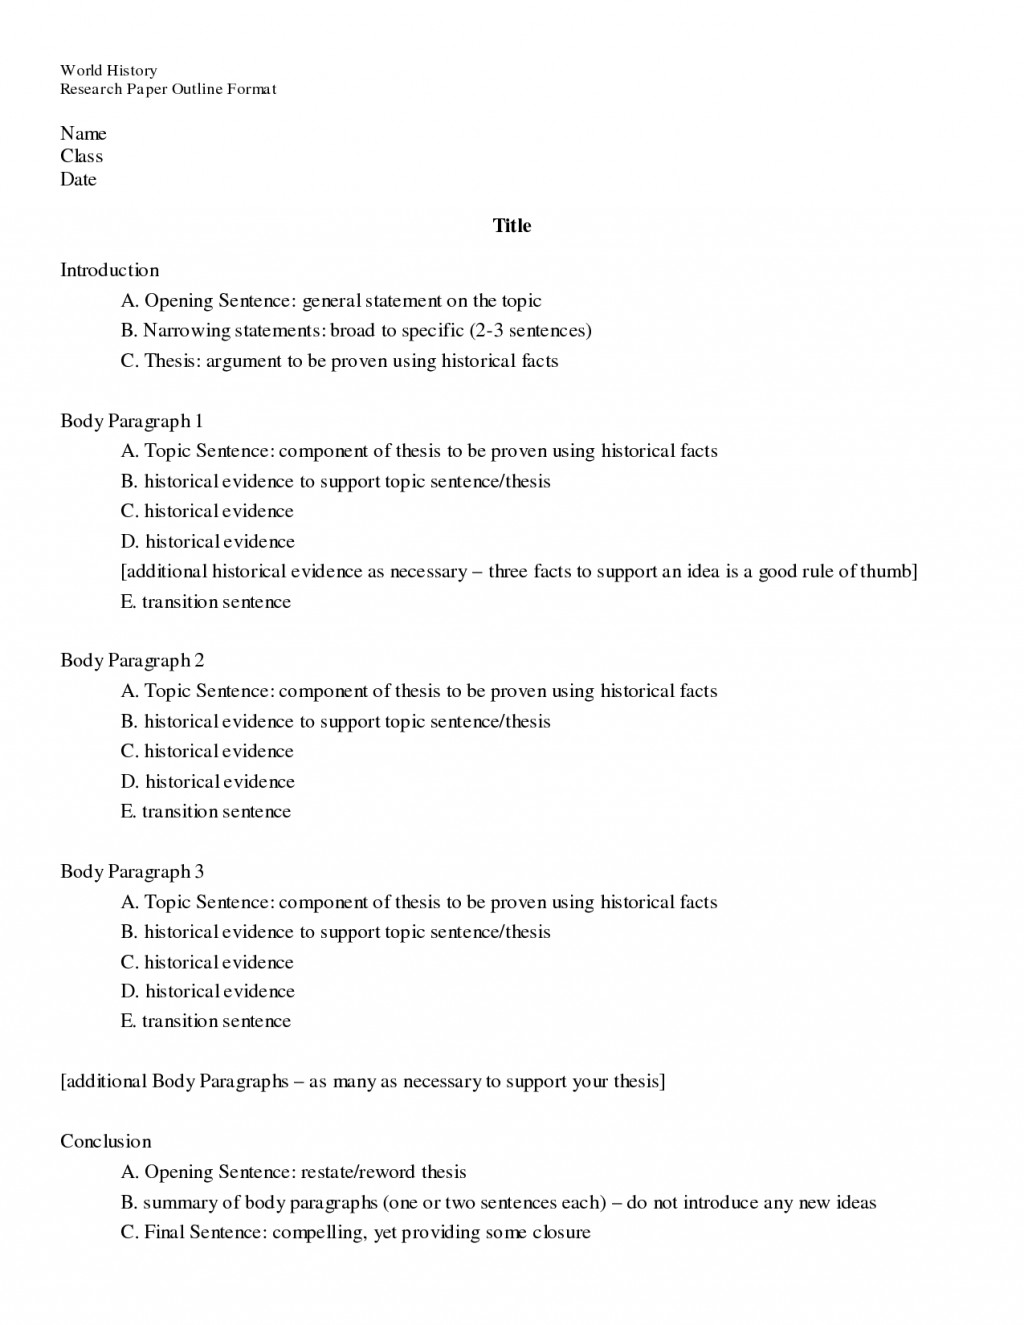 009 Research Paper Good Topics For 10th Grade Awesome English Large